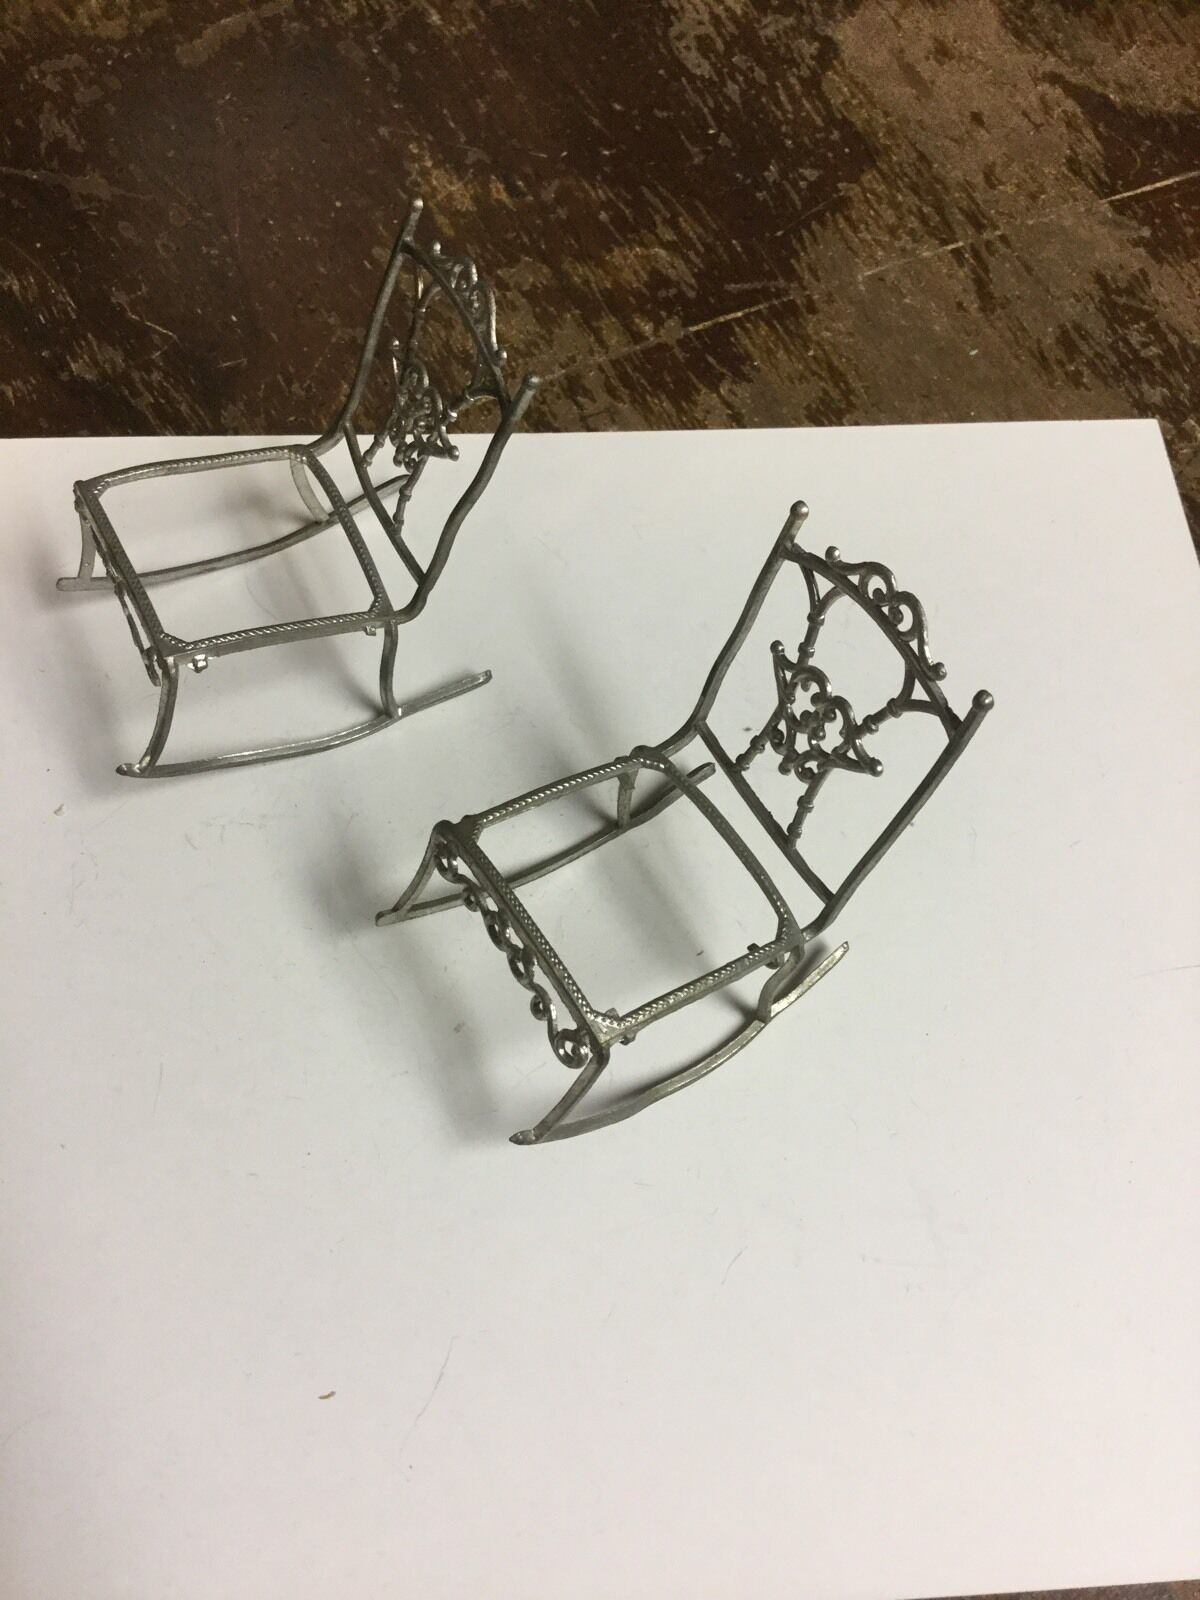 Dollhaus Miniature weich Bendable Rocking Chairs